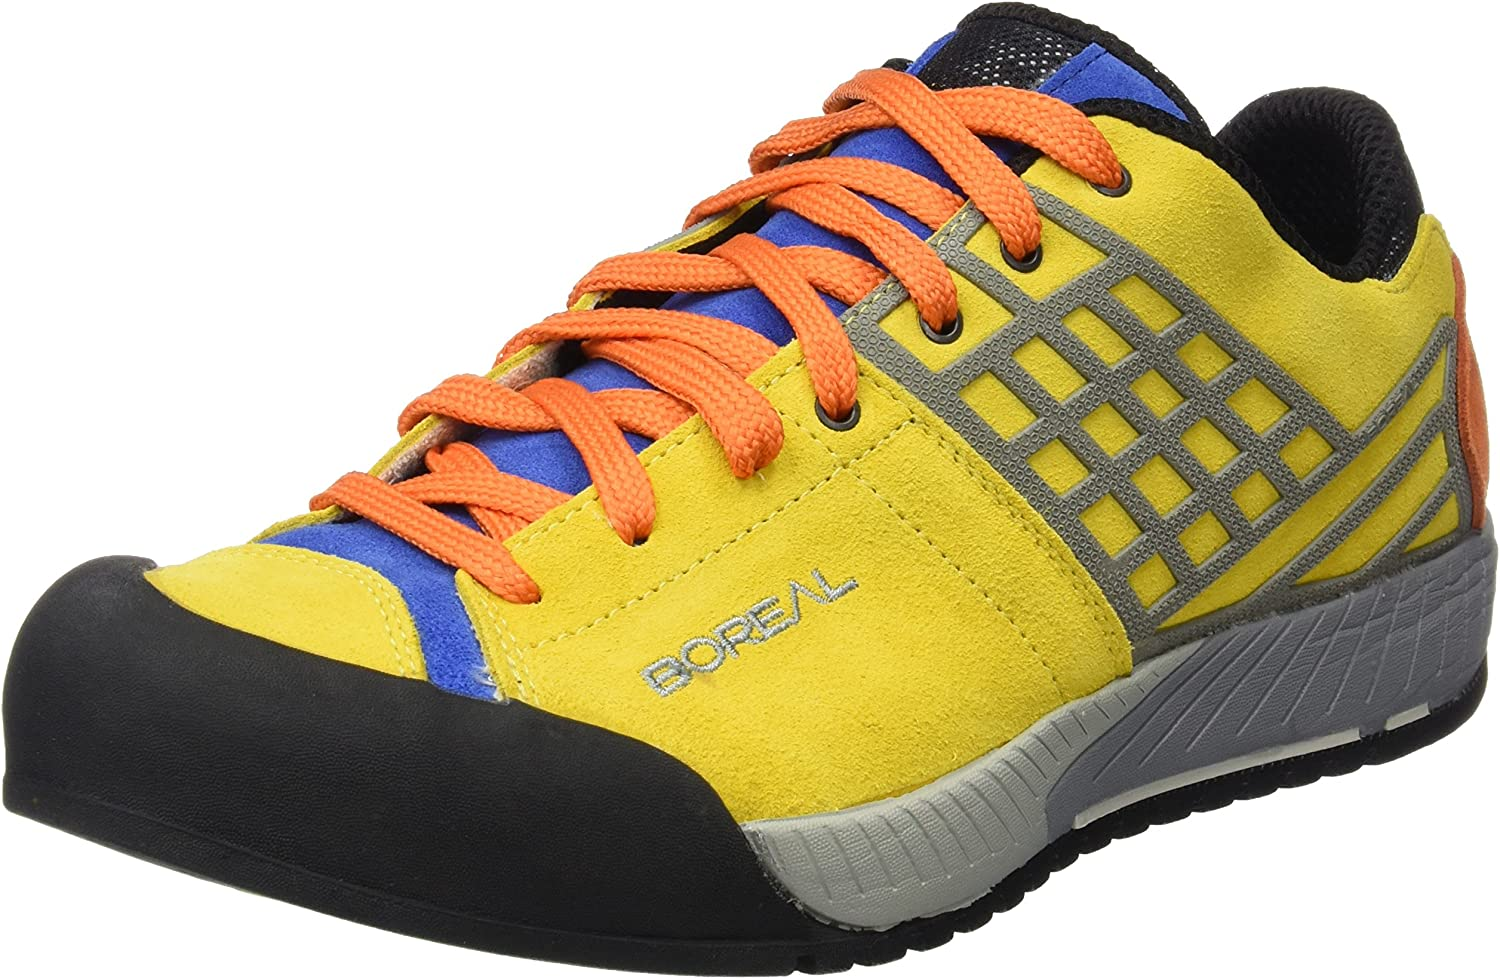 (10, lemon tree)  Boreal Bamba  Men's Sport Trainers, Men, Bamba